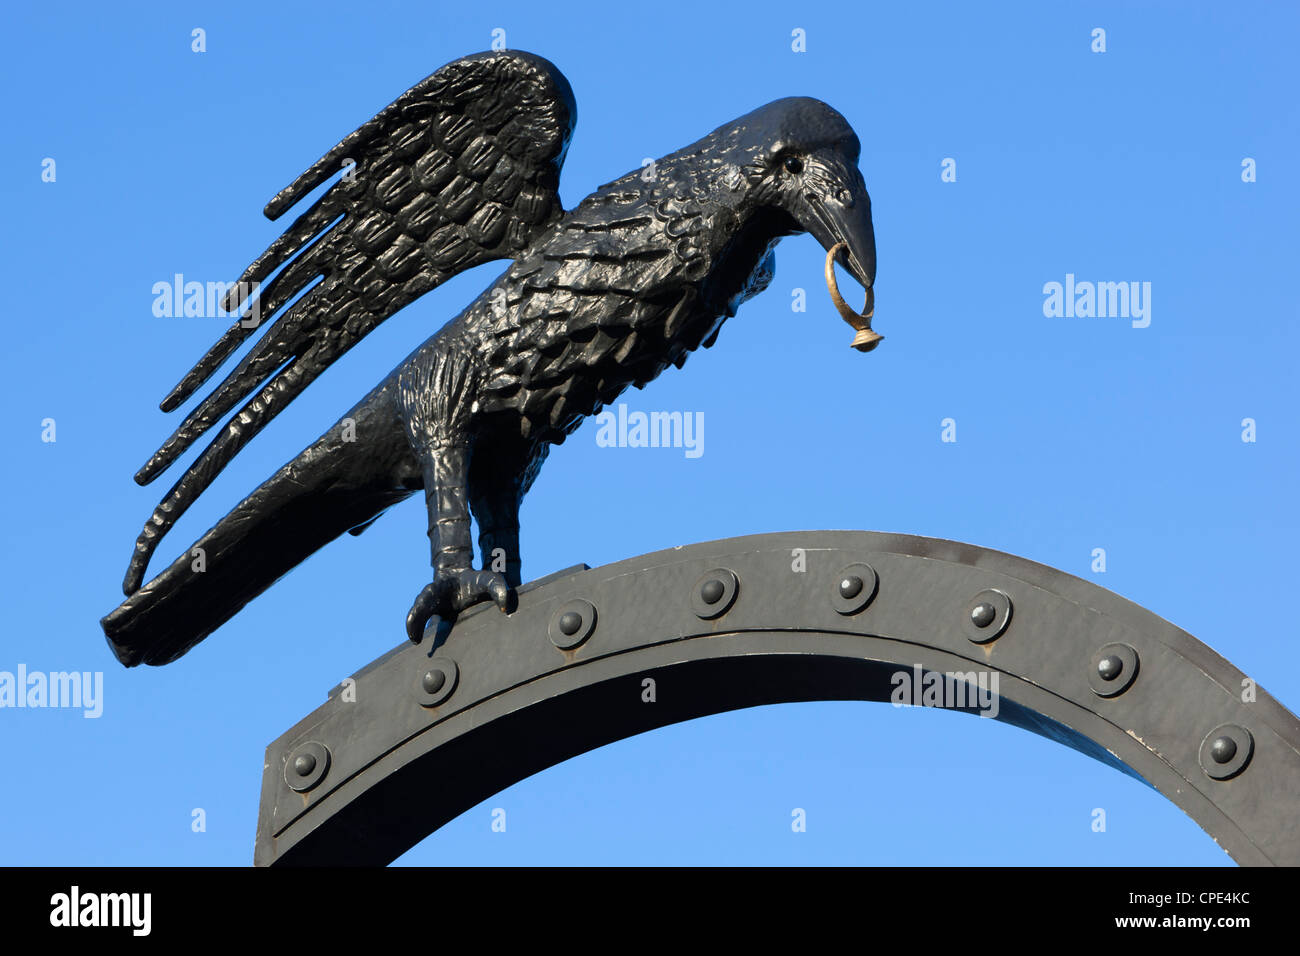 Raven motif derived from Coat of Arms of Matthias Corvinus, Royal Palace (Buda Castle), Budapest, Hungary, Europe - Stock Image